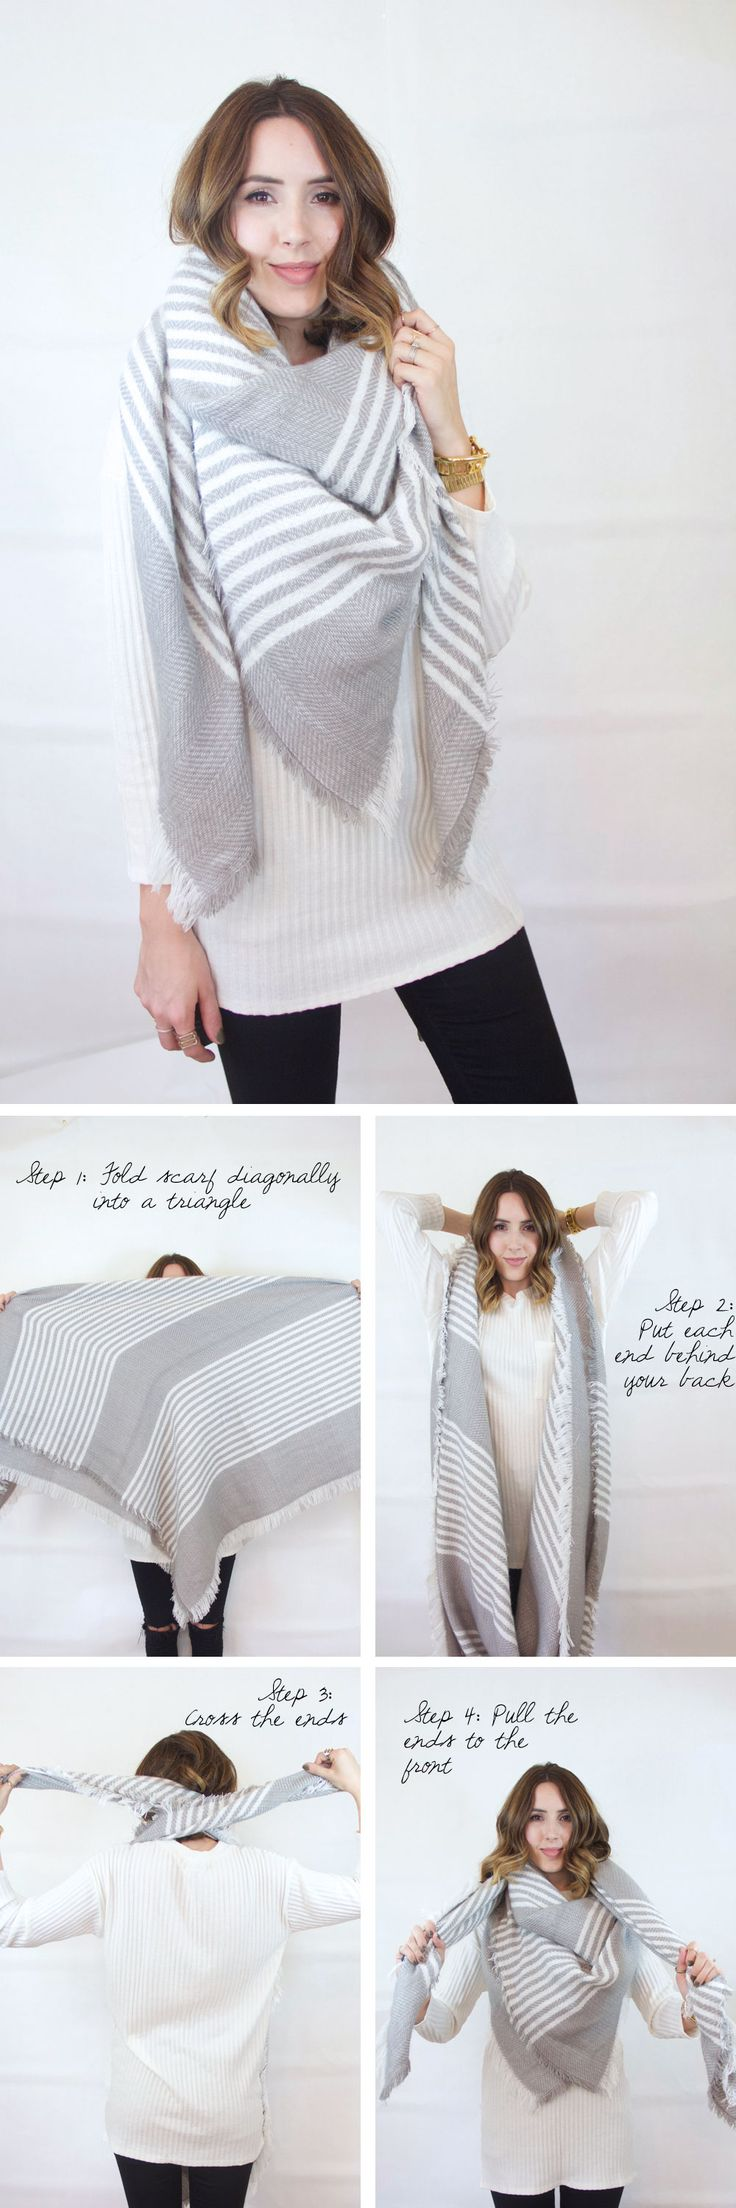 how-to-tie-a-blanket-scarf